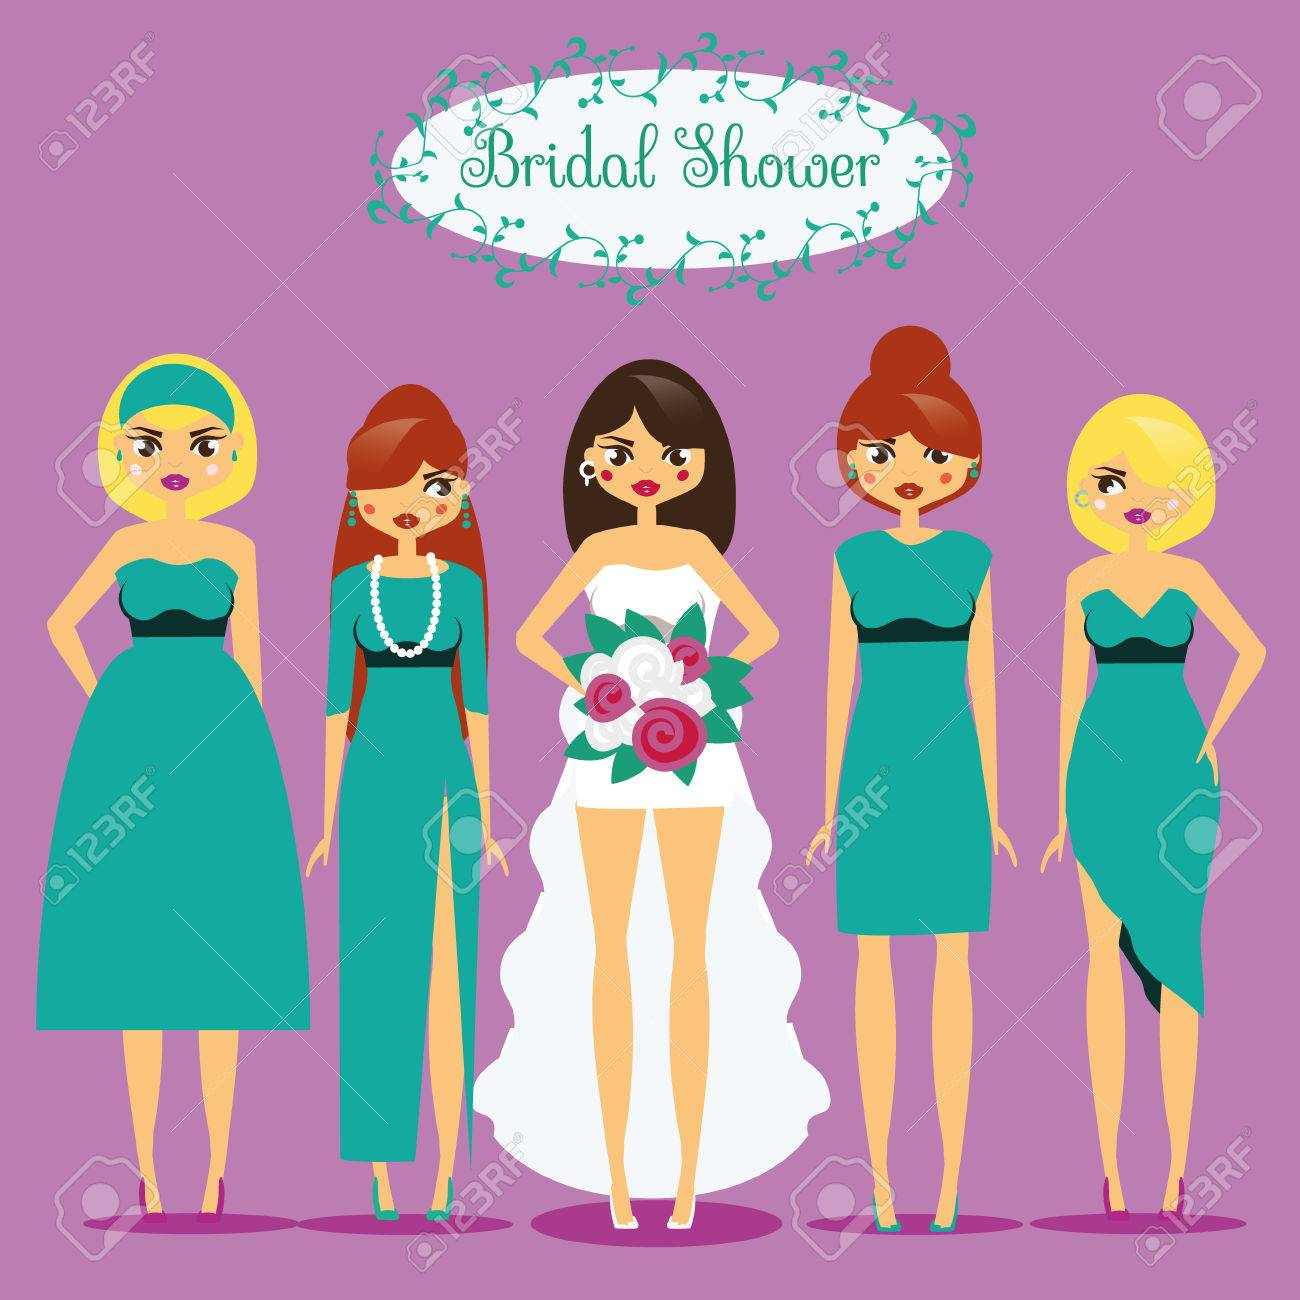 bride with bridesmaids woman in fashionable dresses bridal shower hen party vector illustration